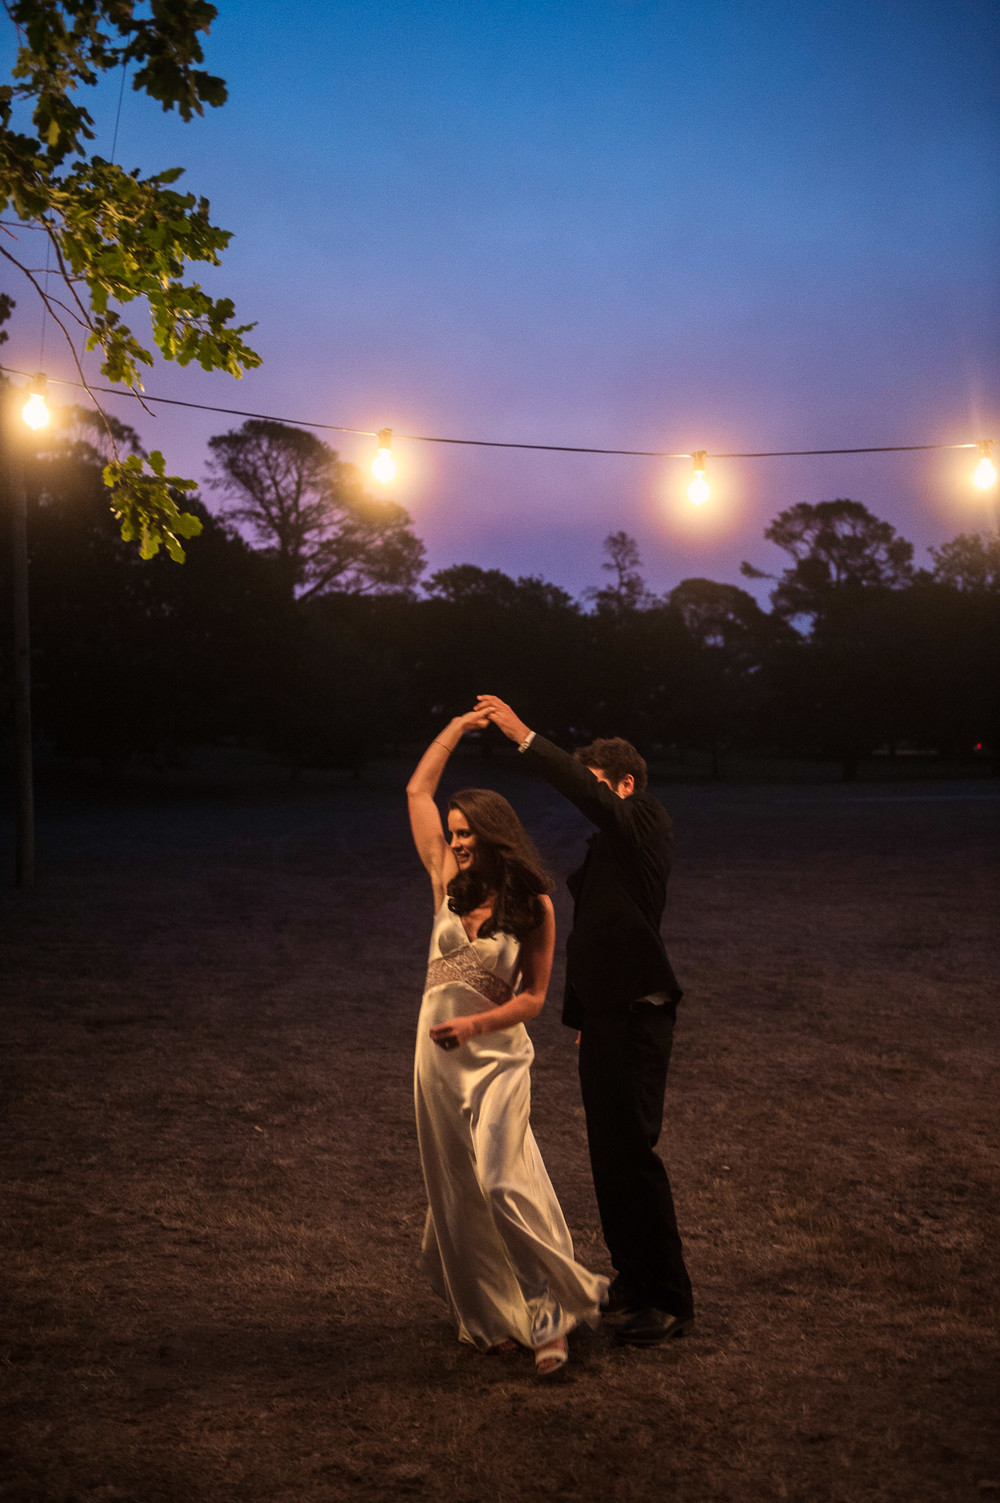 Festoon lighting in the trees surrounding the clear marquee. Bride and groom dancing